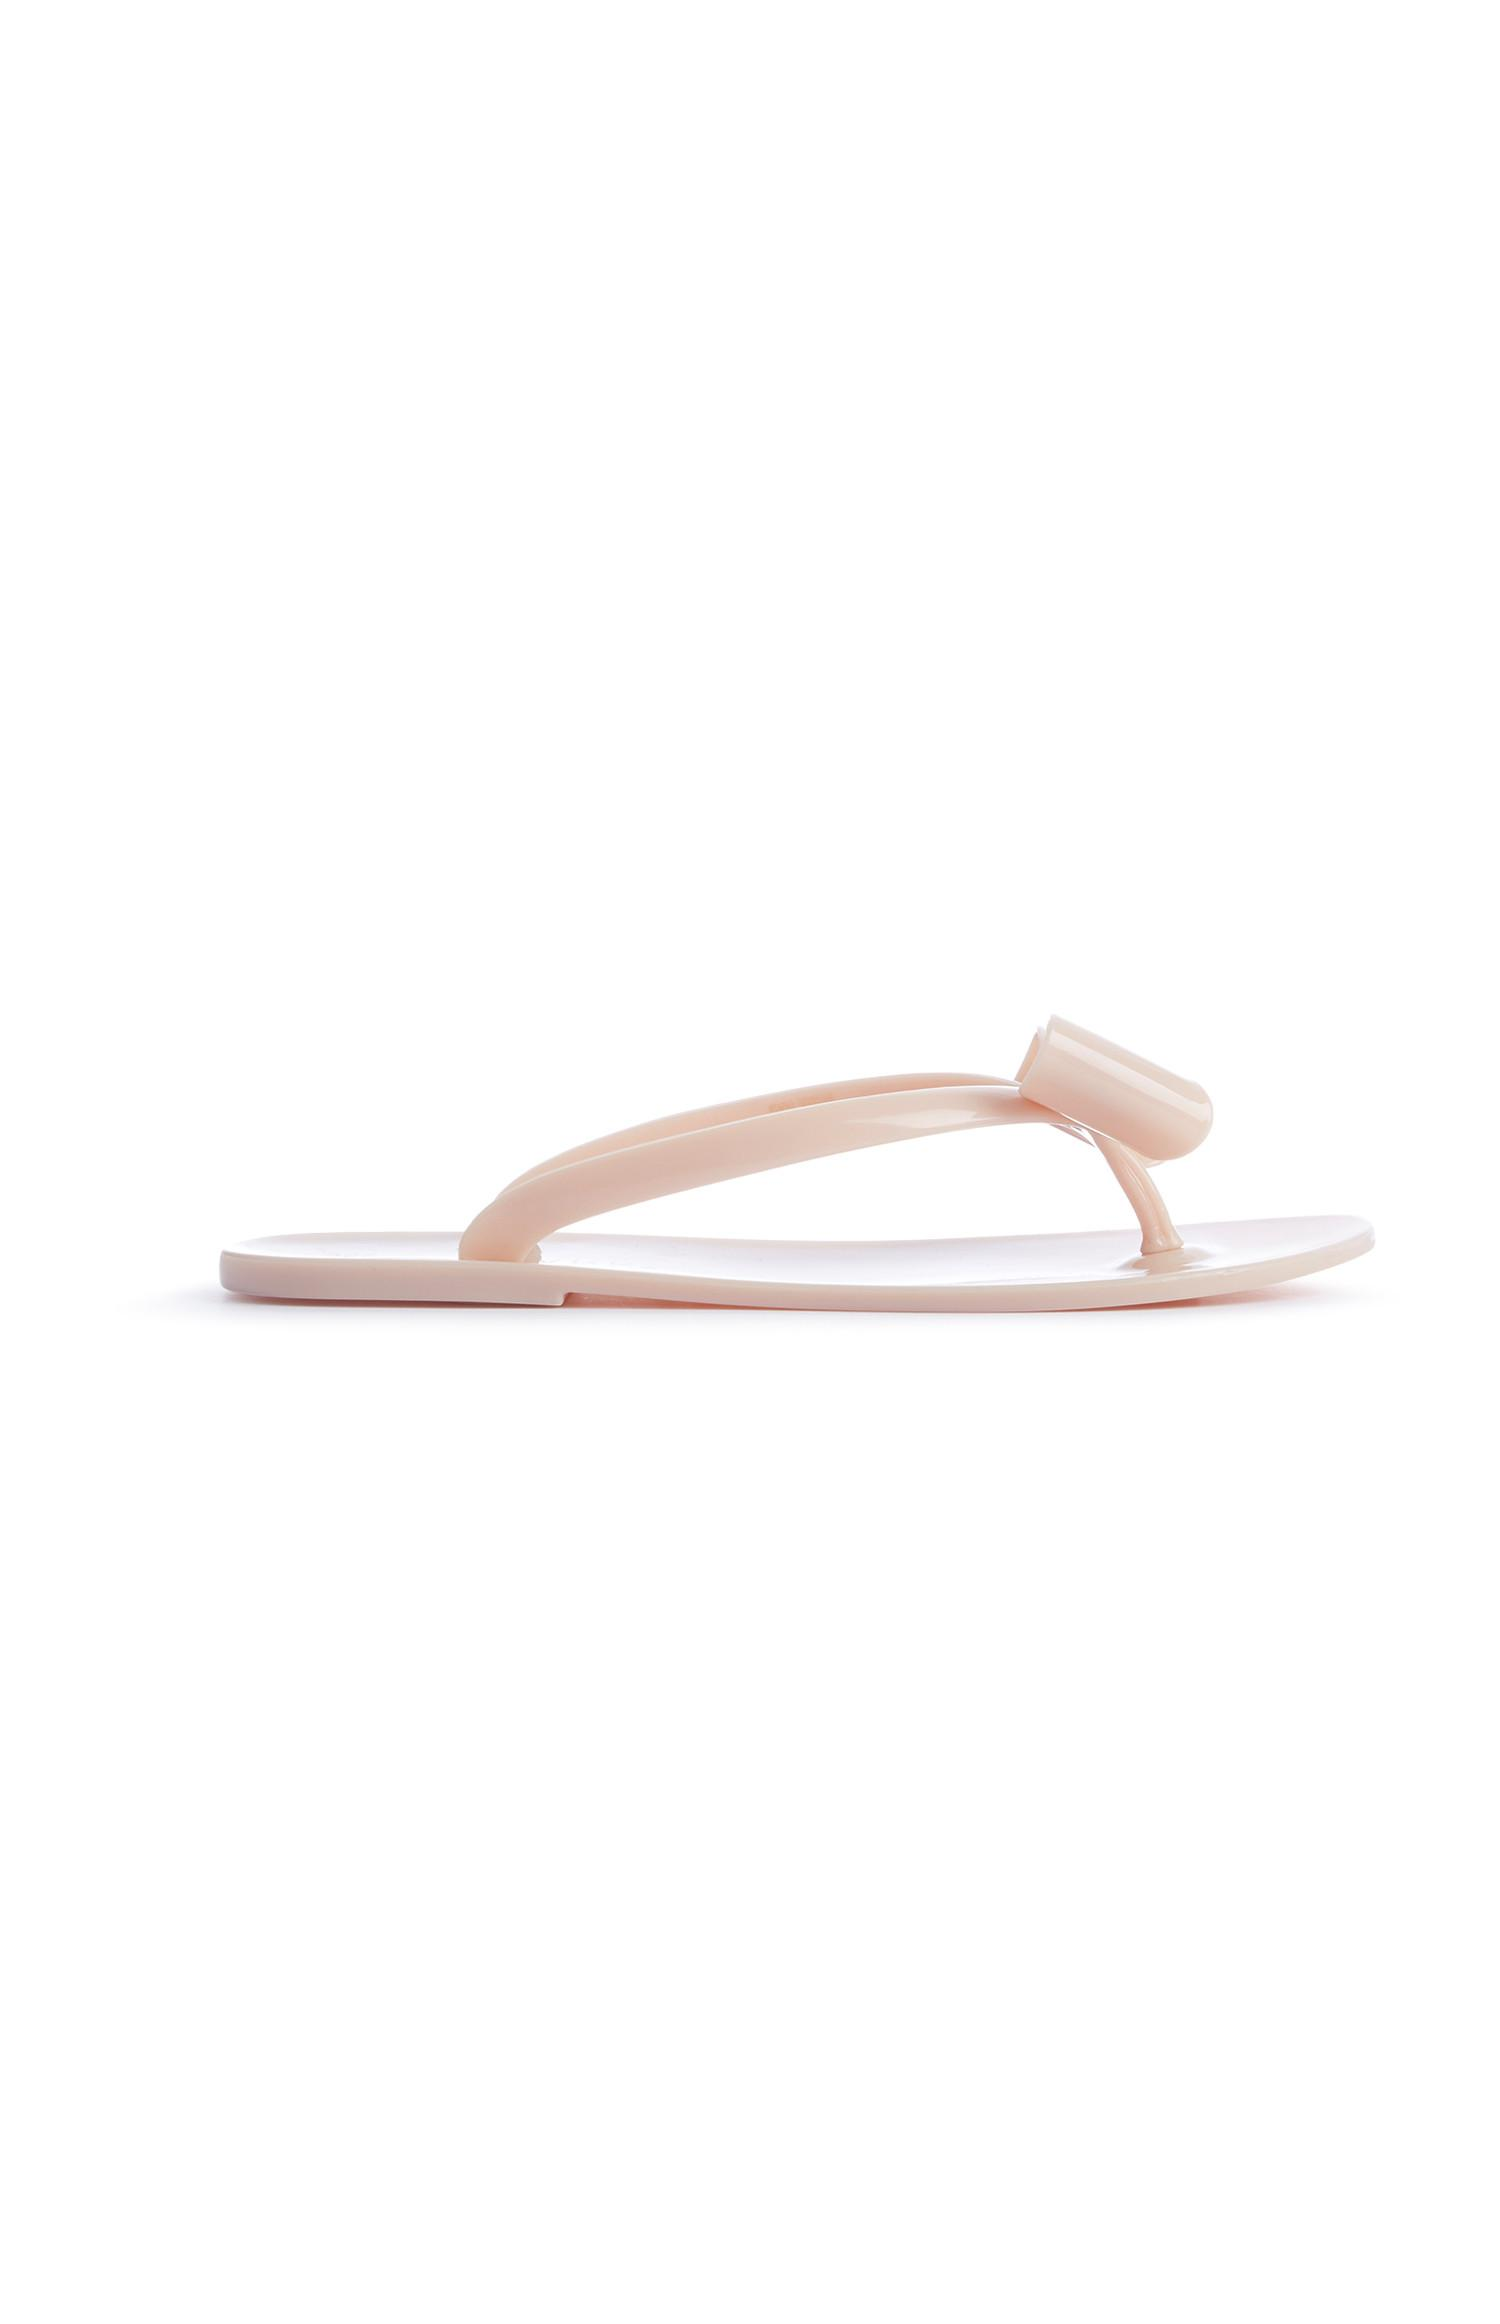 Chanclas de goma color nude con lazo